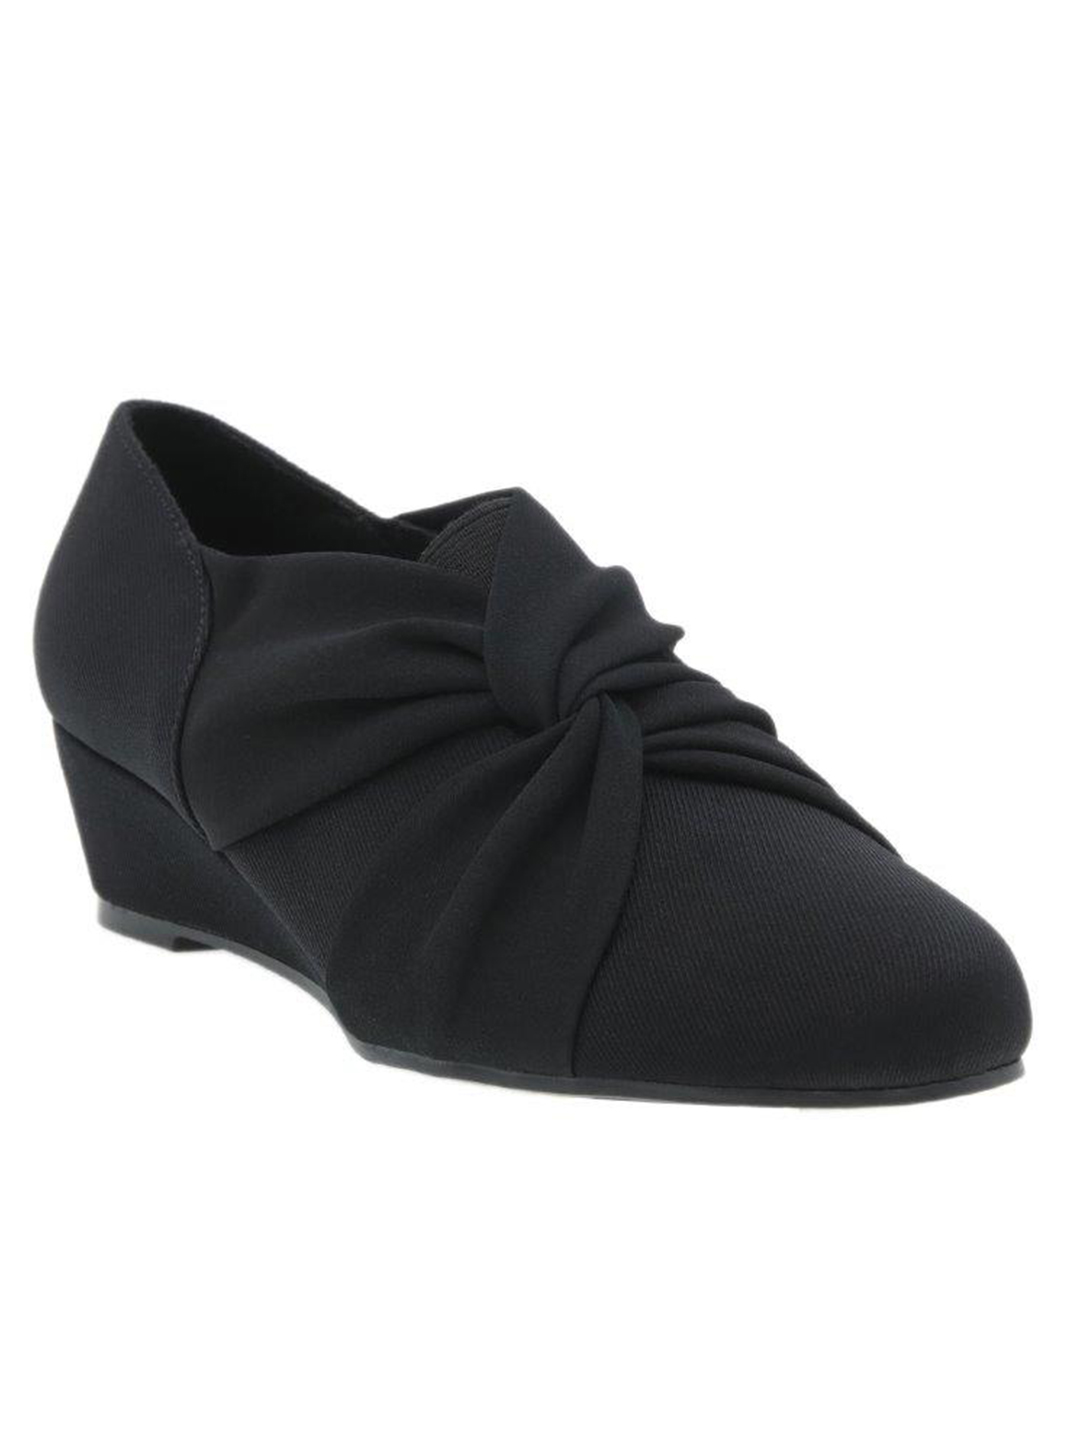 Impo Galden Wedge - black - Front